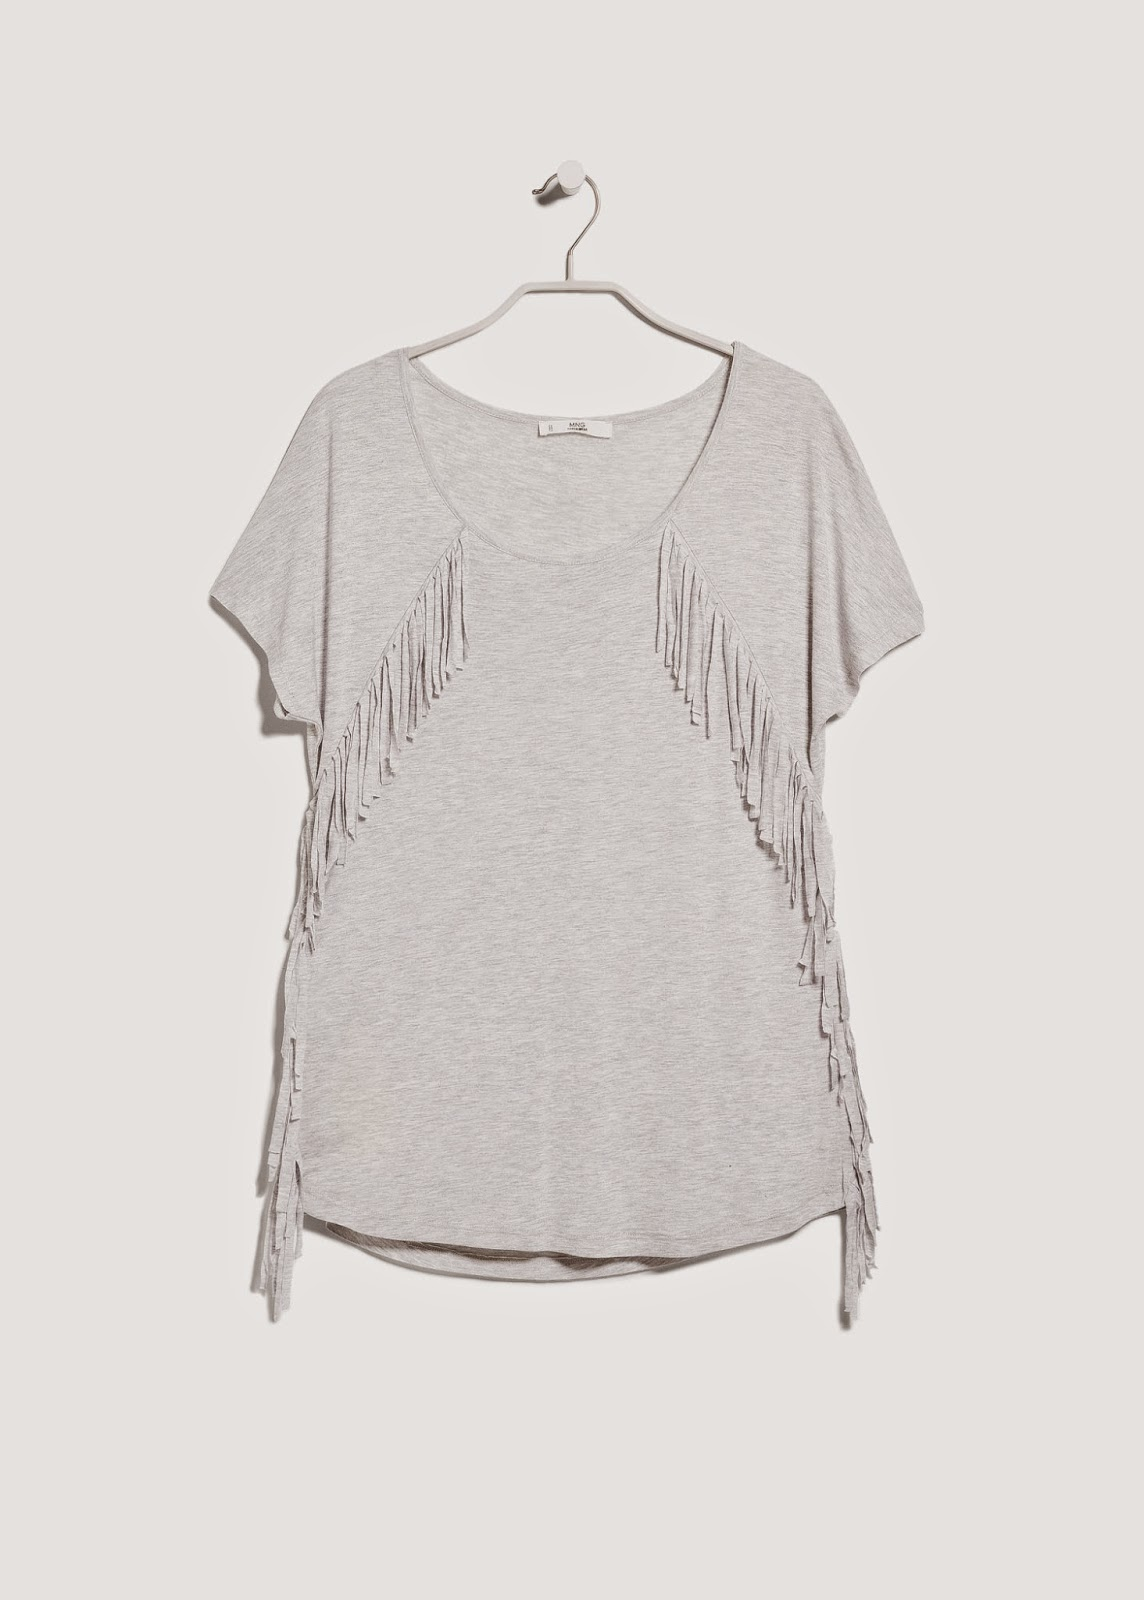 grey fringed t shirt, mango fringed top,